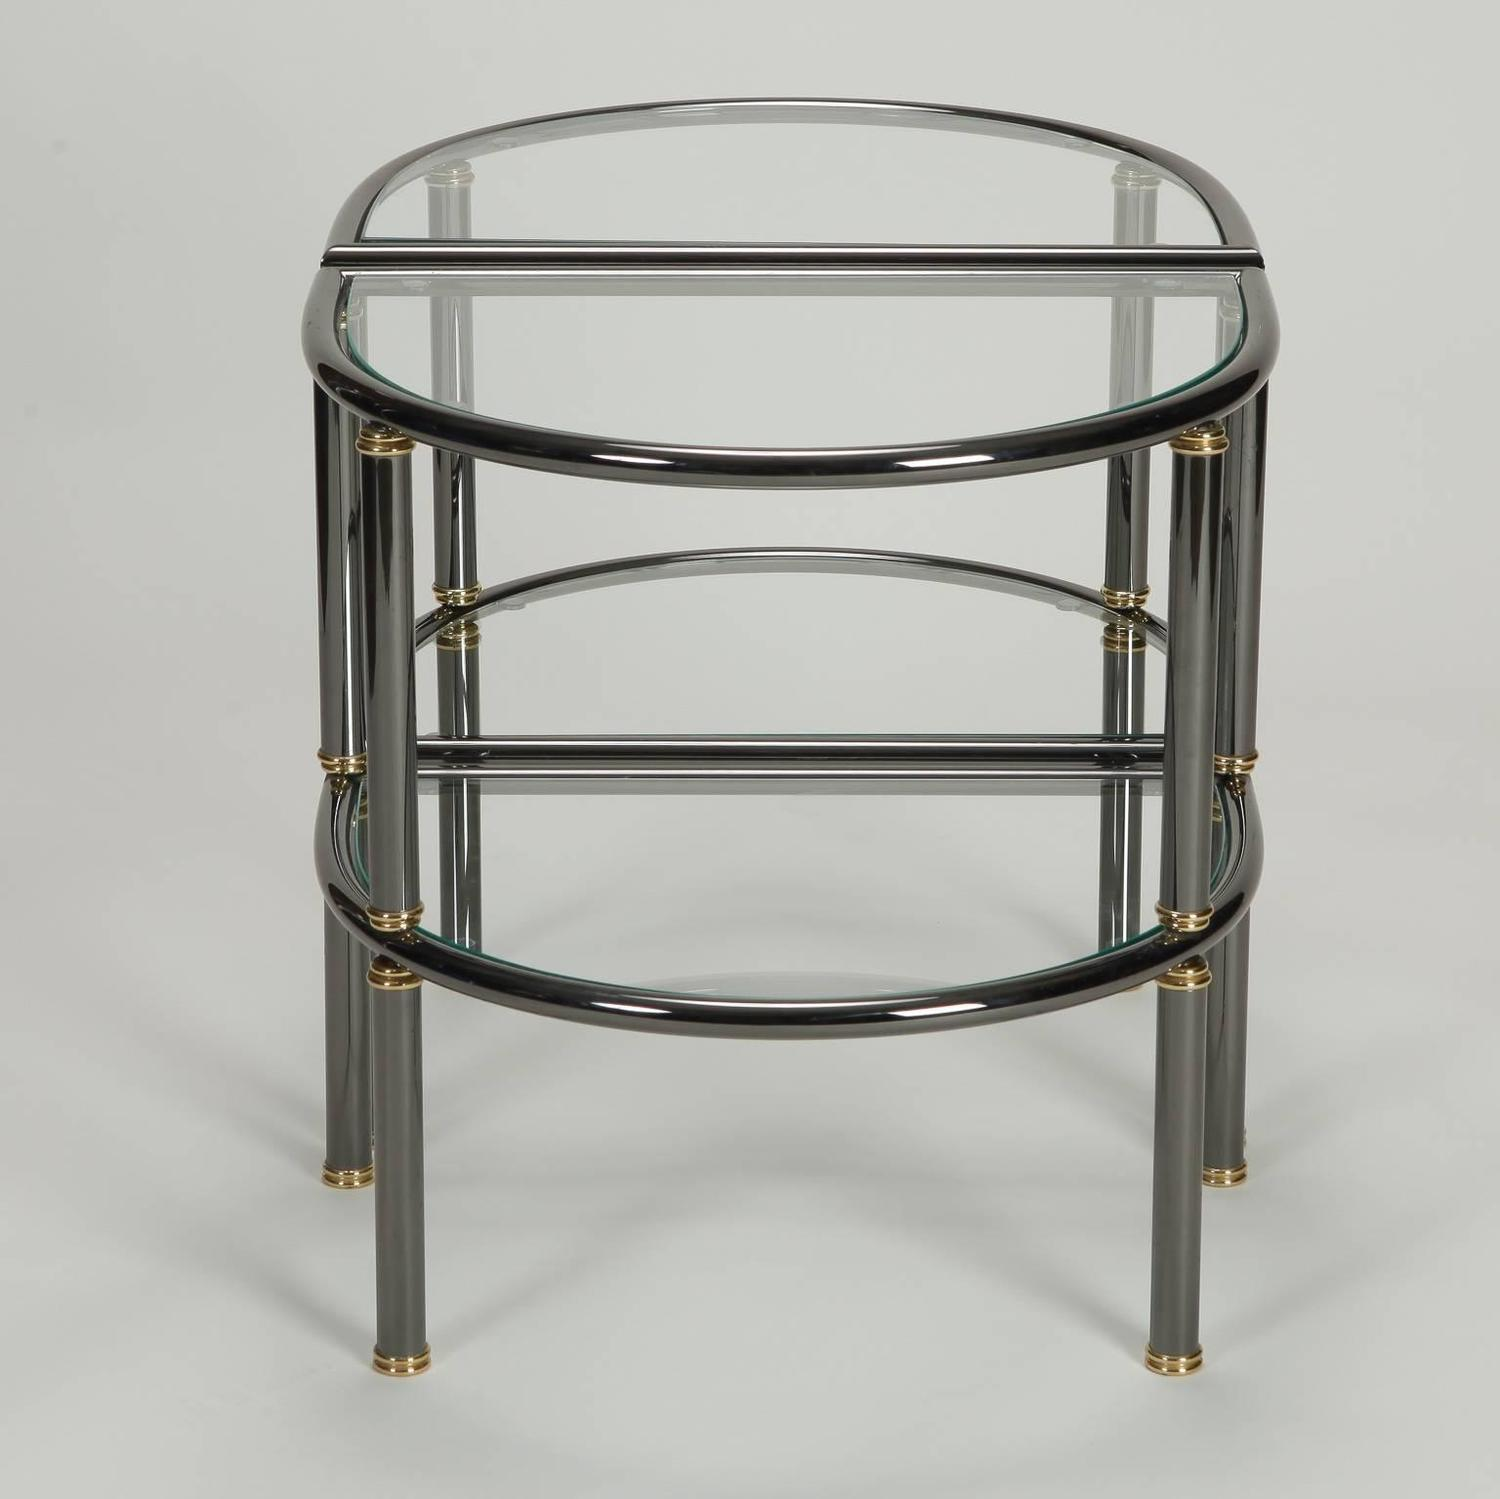 Century demilune gun metal and glass side tables for sale at 1stdibs